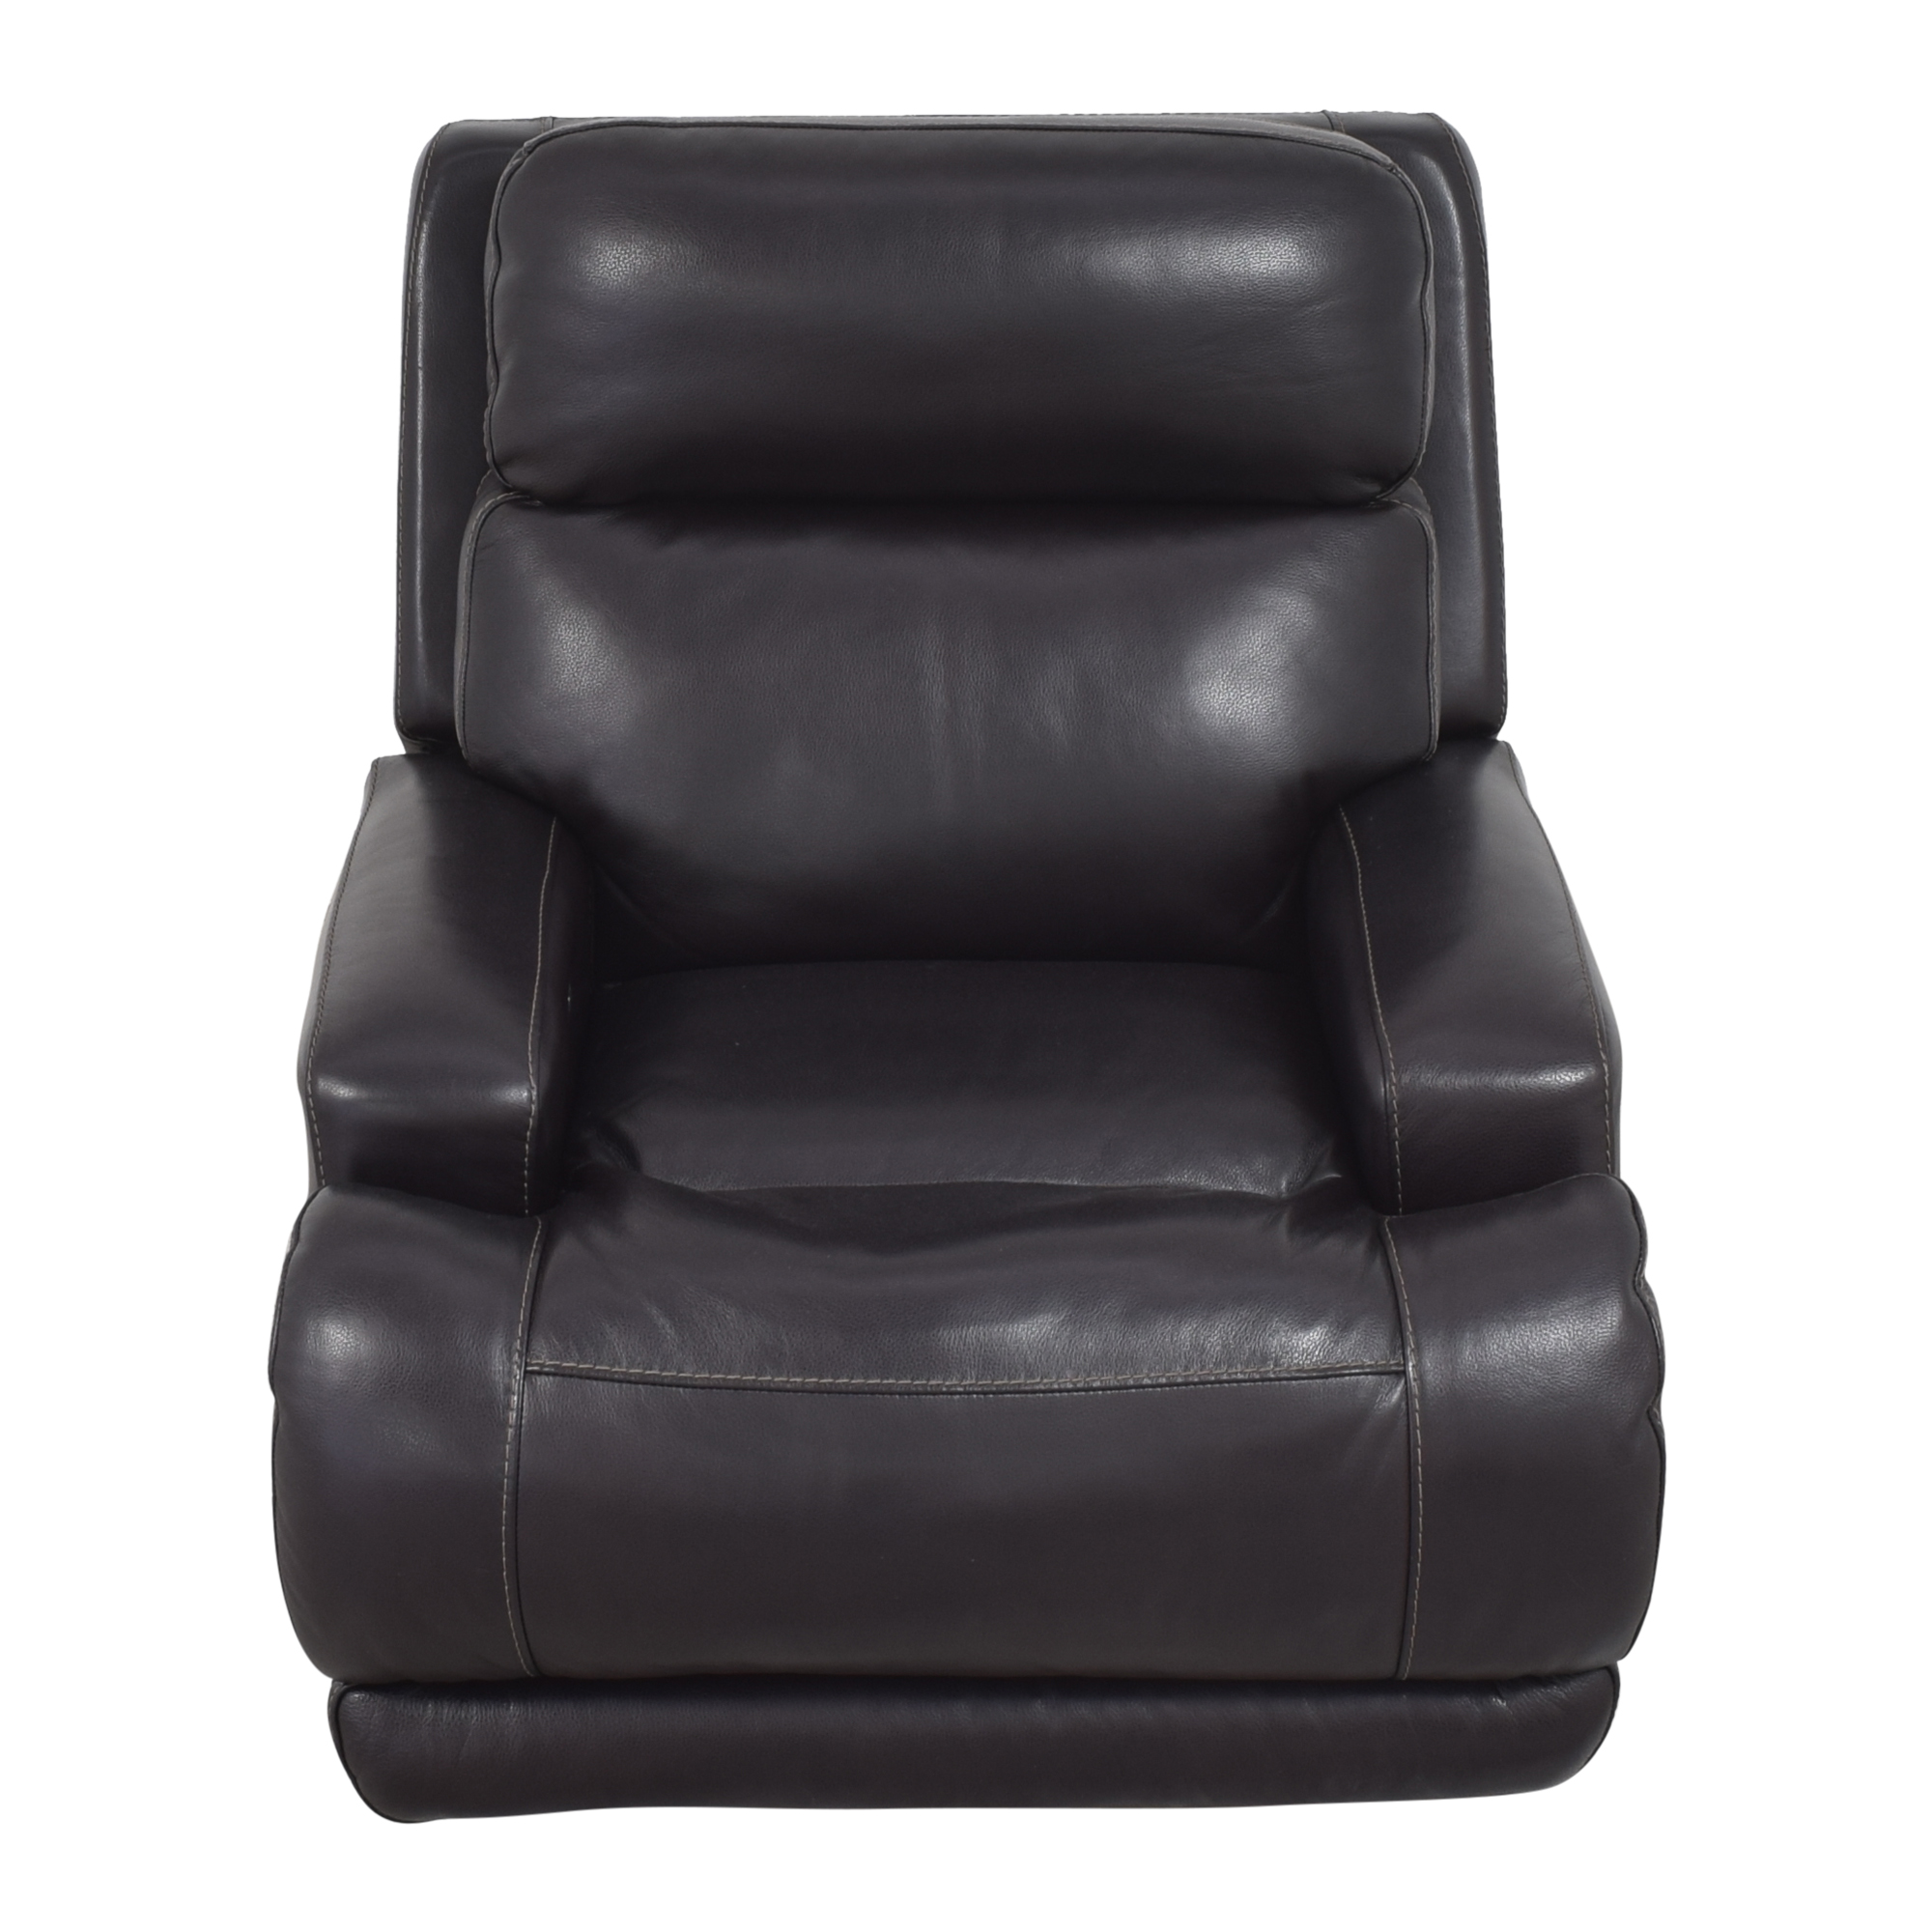 Raymour & Flanigan Raymour & Flanigan Tompkins Power Glider Recliner dimensions